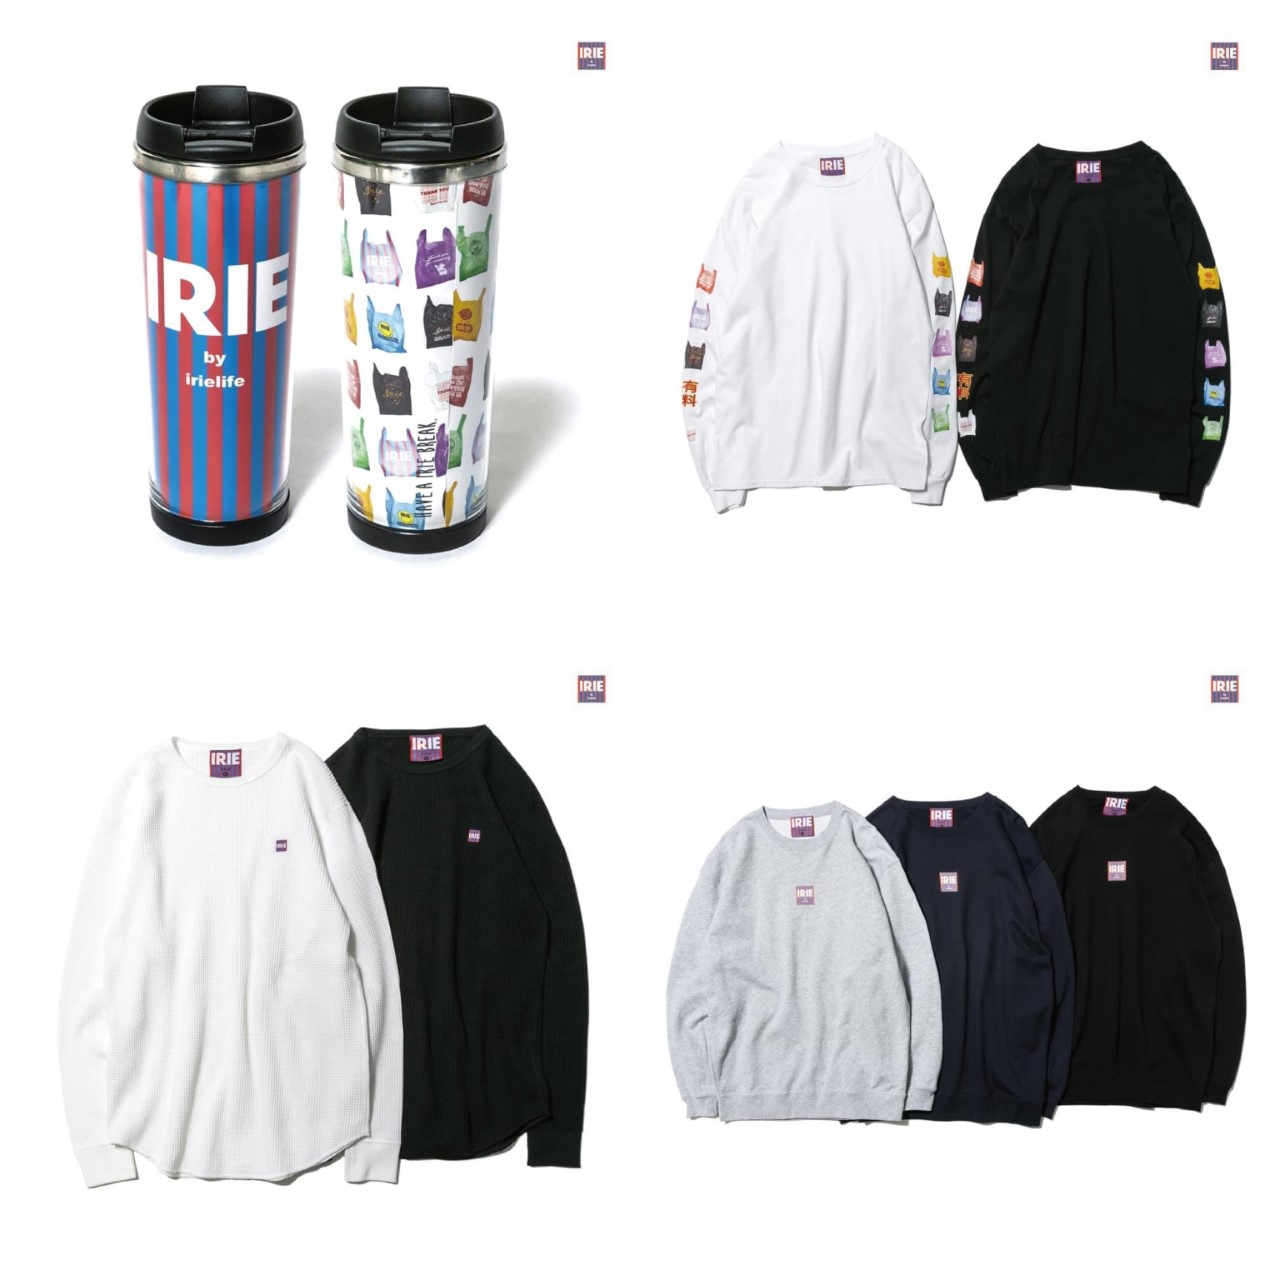 NEW ARRIVAL!! -IRIE by irielife-